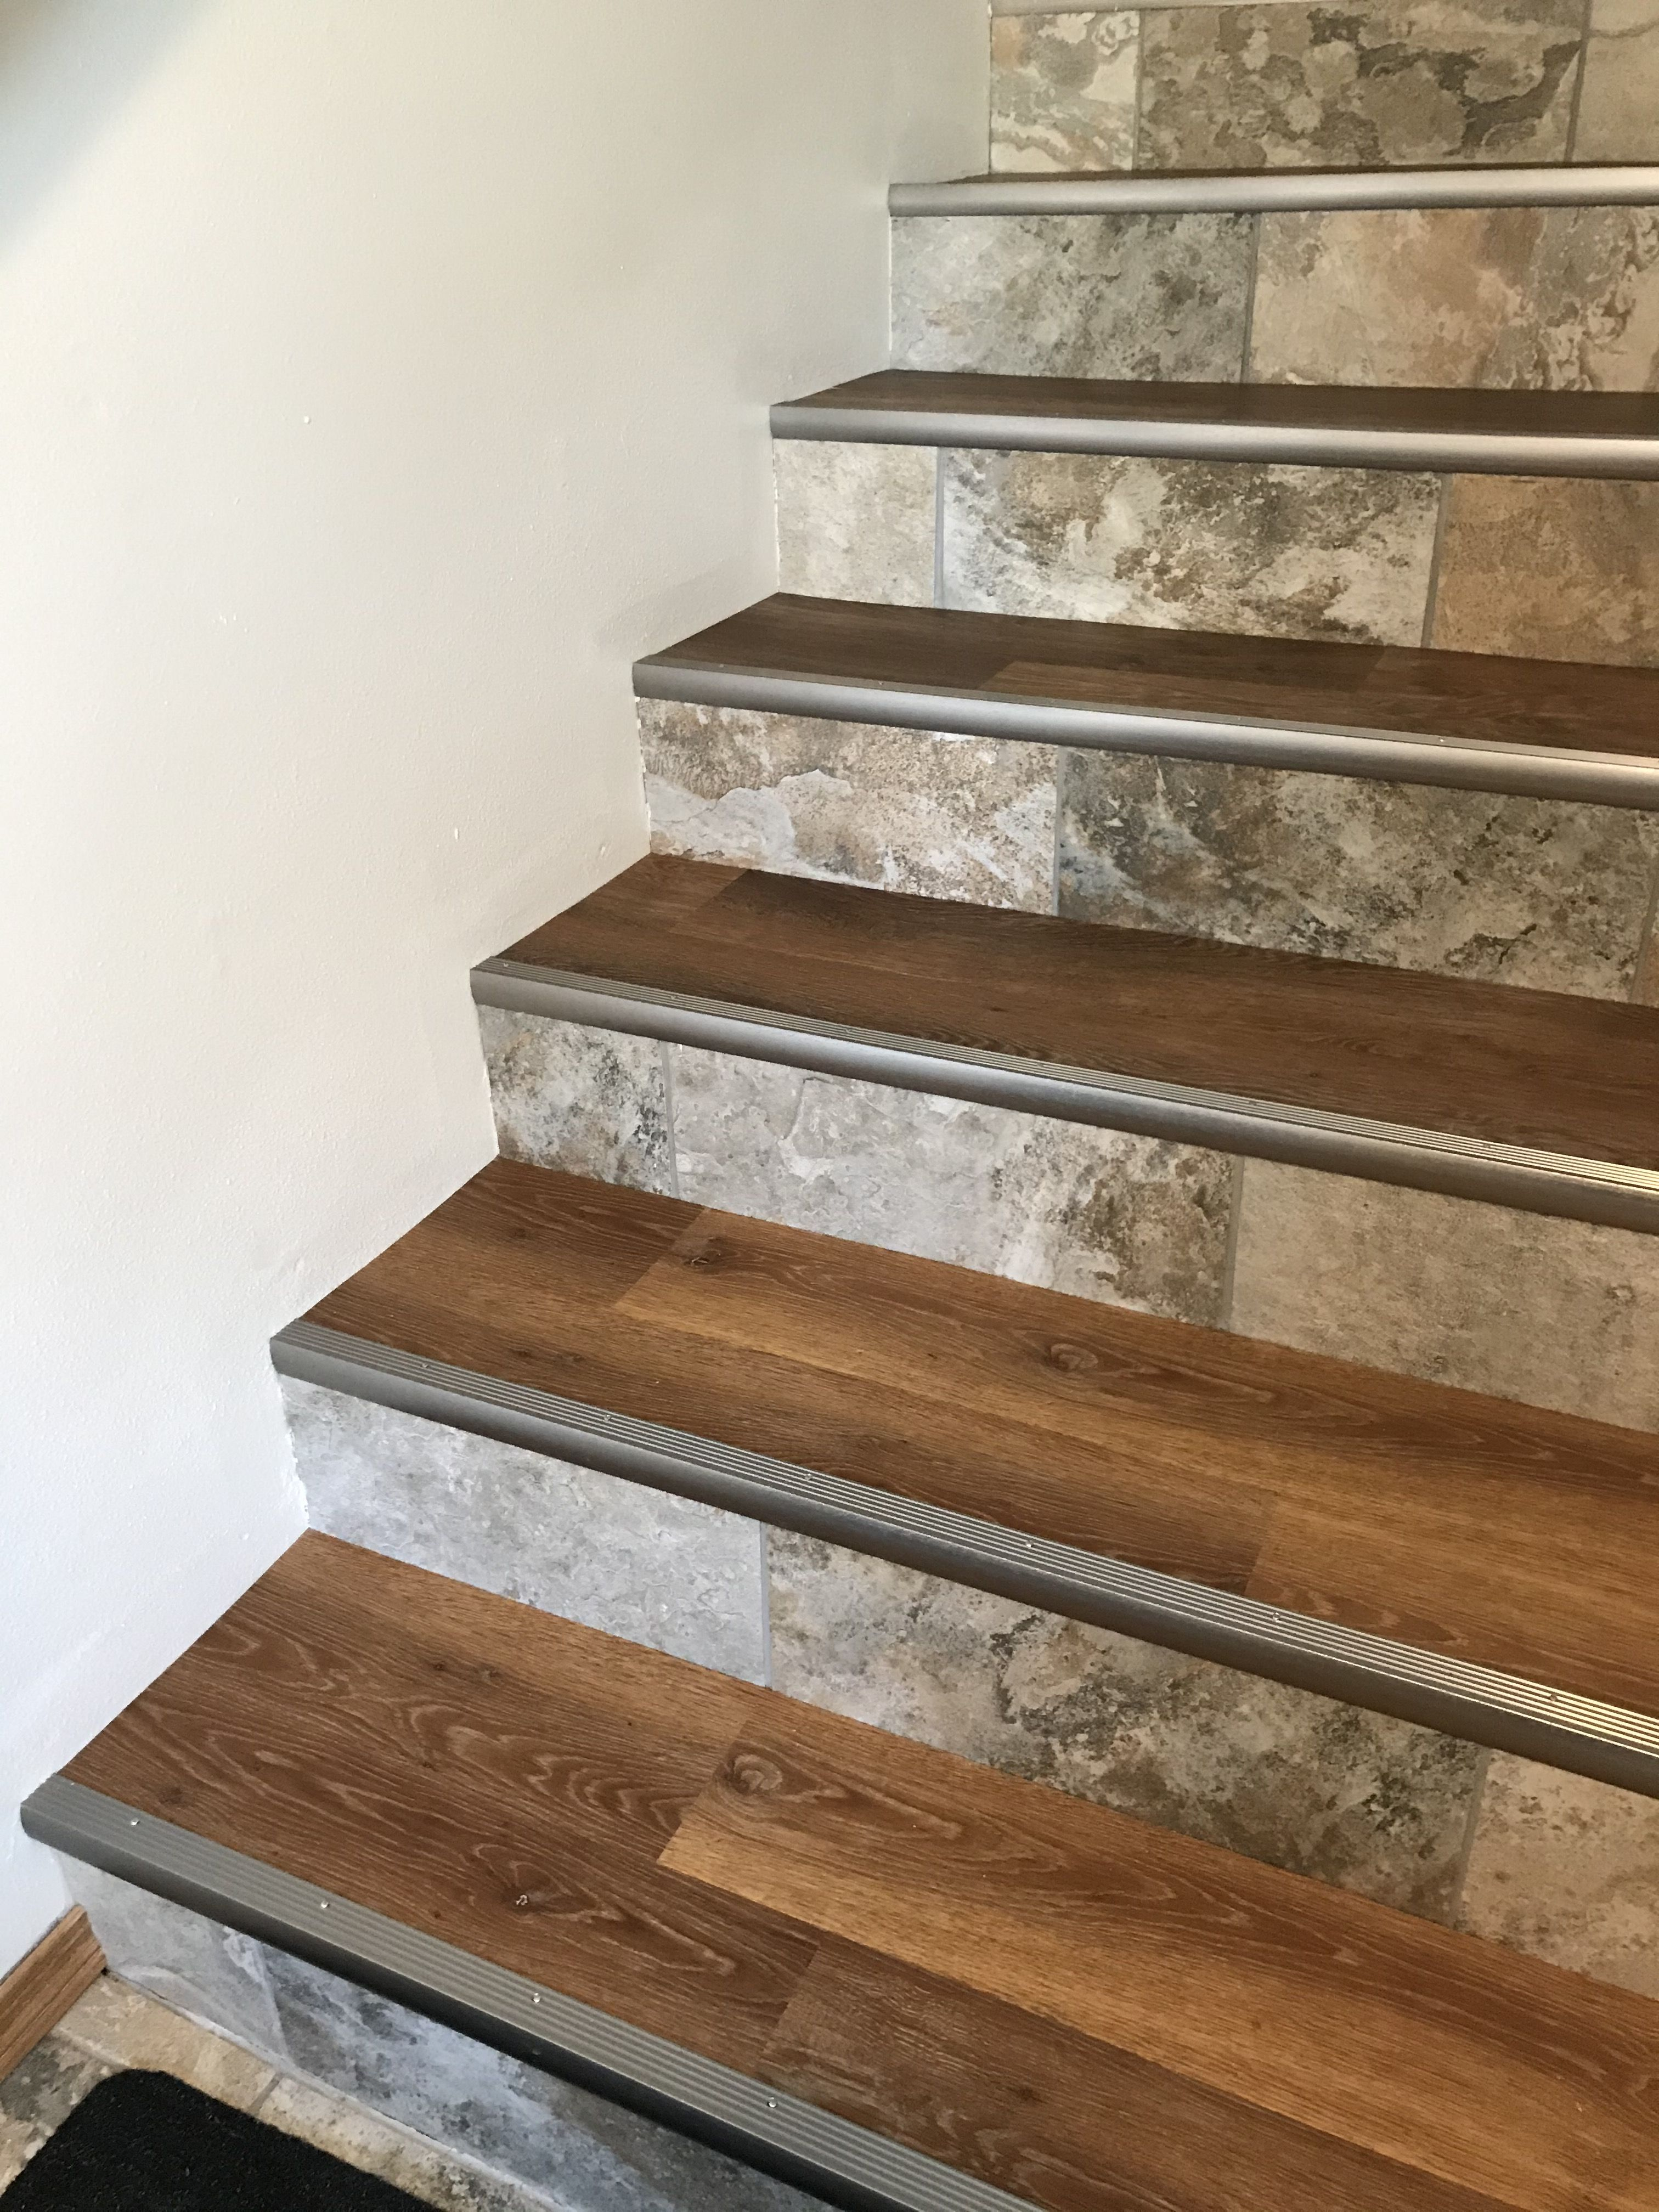 My Stairs Finally Finished Luxury Vinyl Plank On The Treads Which Matches The Upstairs Rooms Porcelain Tile On In 2020 Tile Stair Nosing Rustic Stairs Stair Nosing